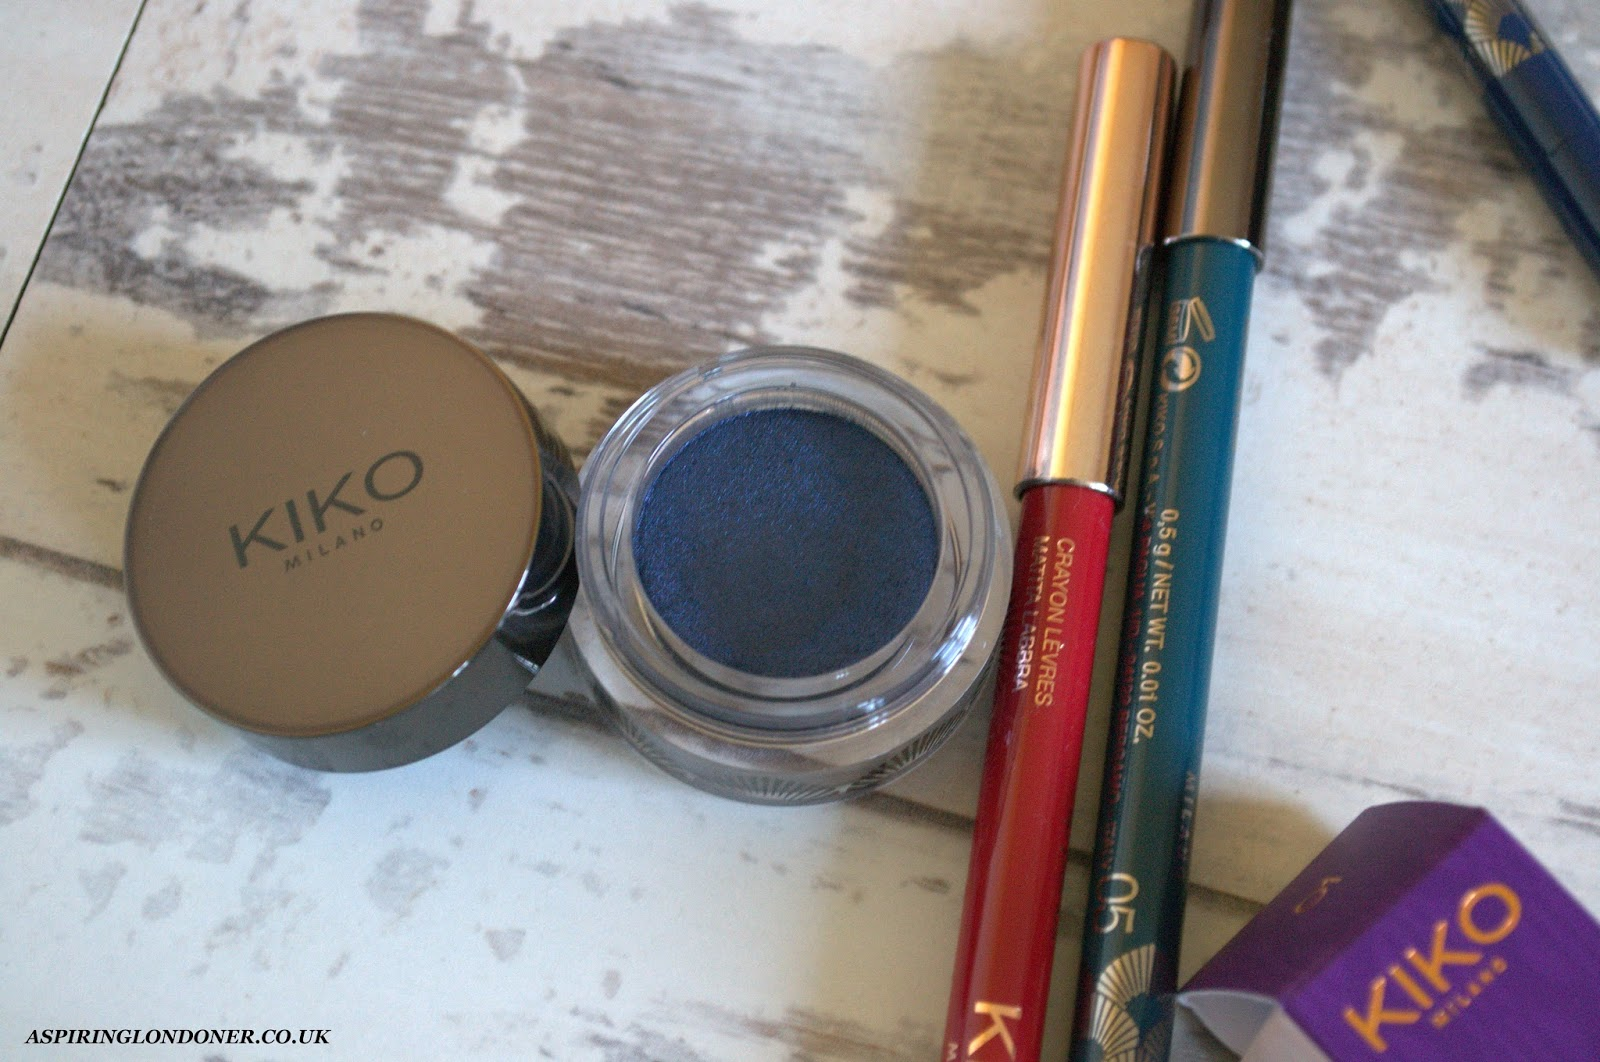 Kiko Rebel Romantic Metallic Shine Eyeshadow Review - Aspiring Londoner